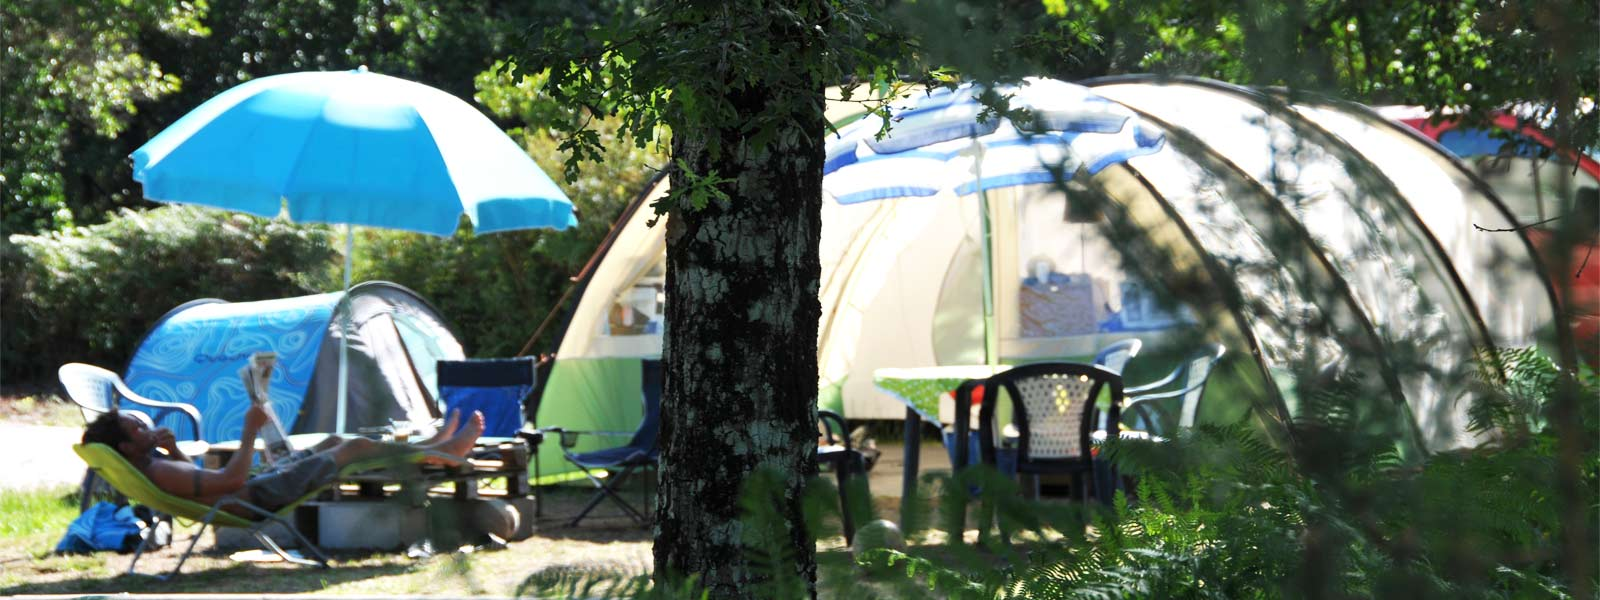 emplacement camping biscarrosse lac